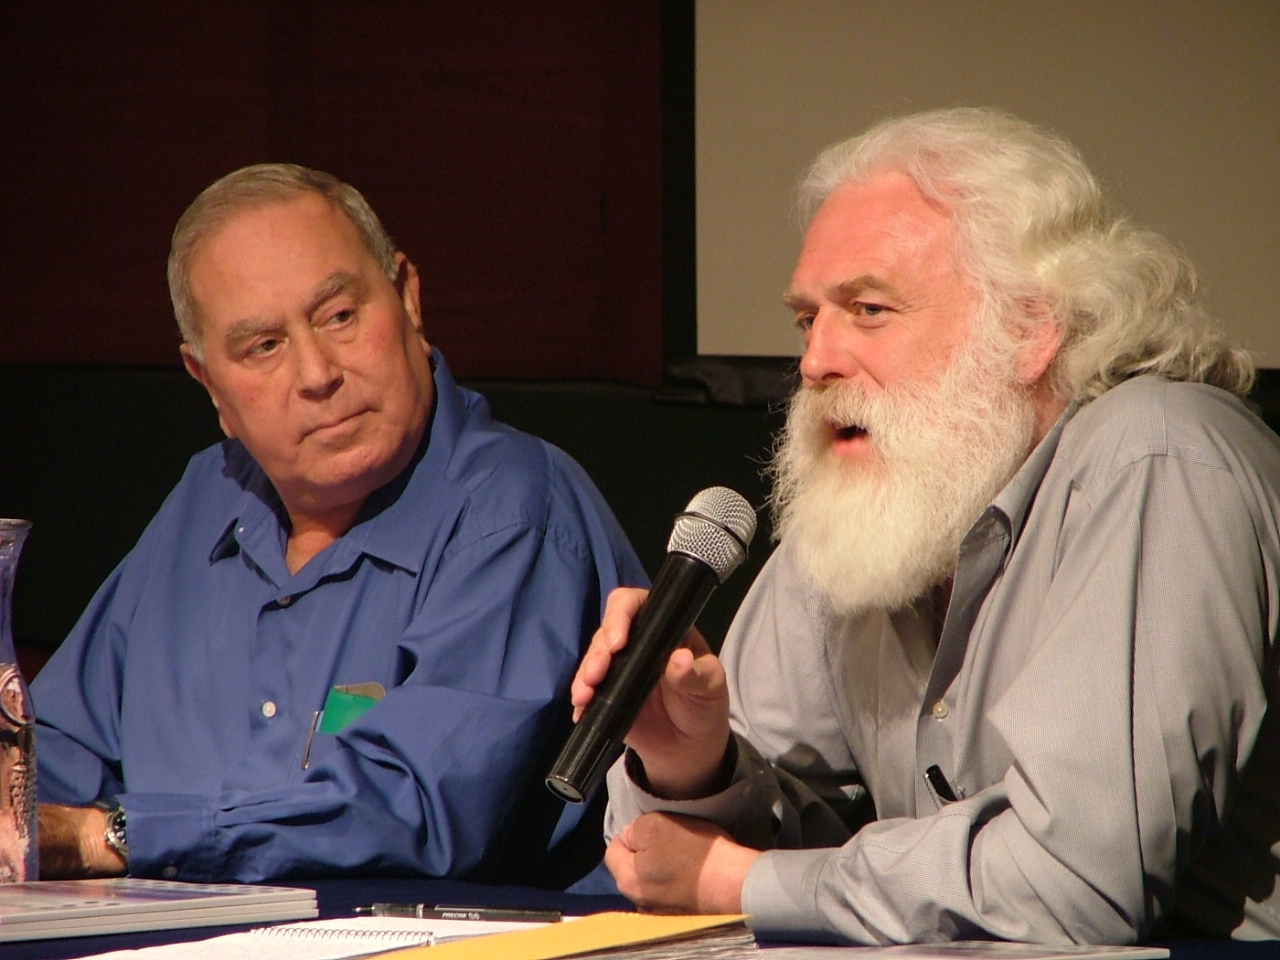 Stephen Lintner from the World Bank and (in blue) an advisor from the Israel water authority, at the public hearing.